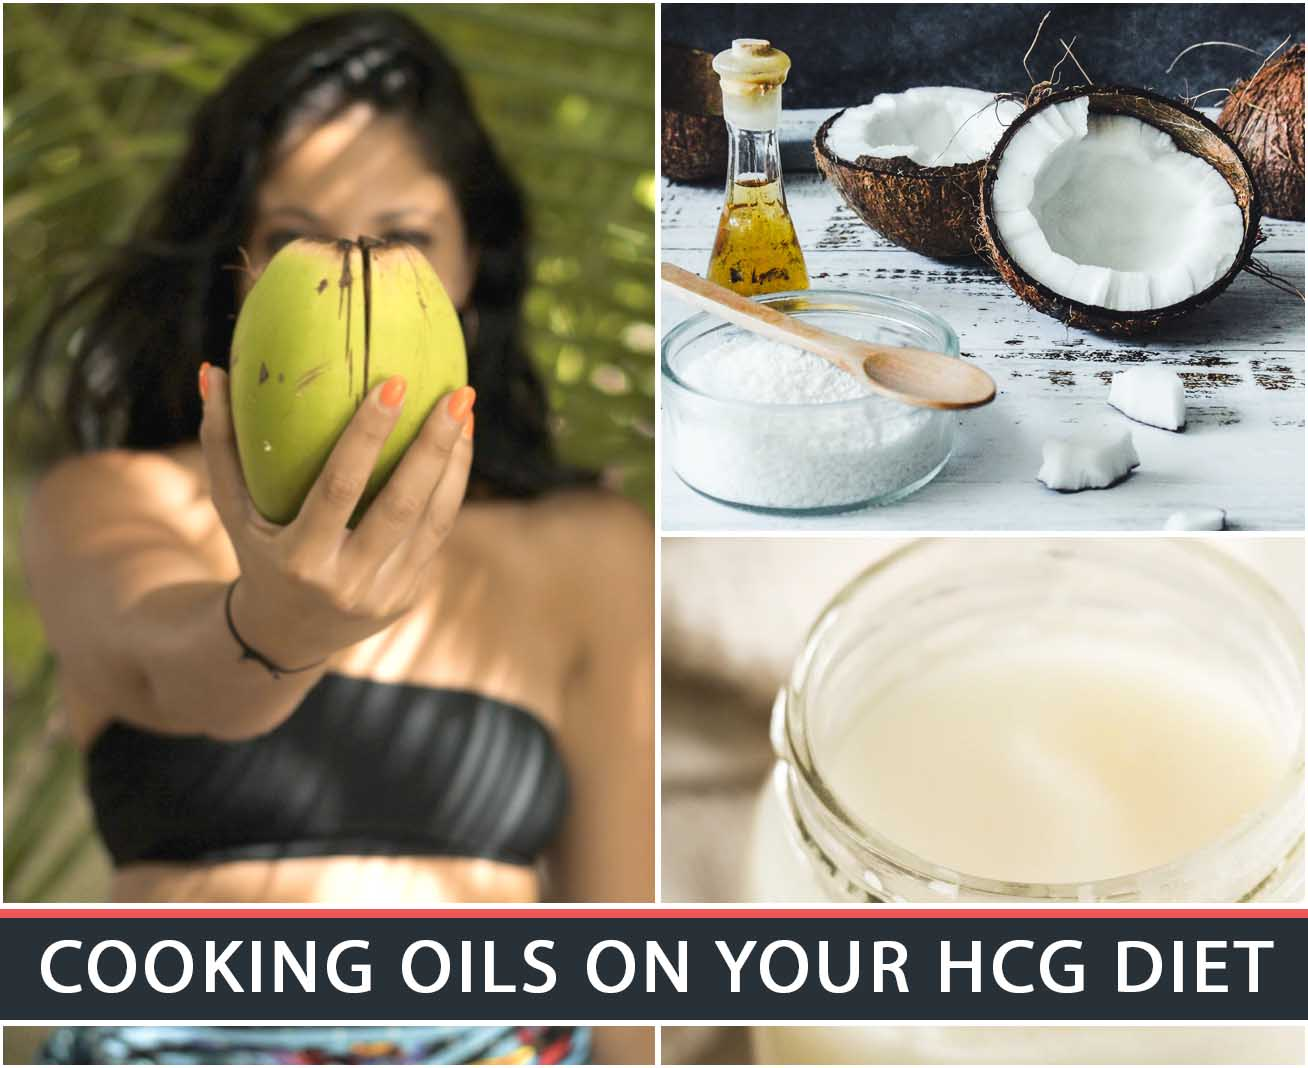 COOKING OILS ON YOUR HCG DIET